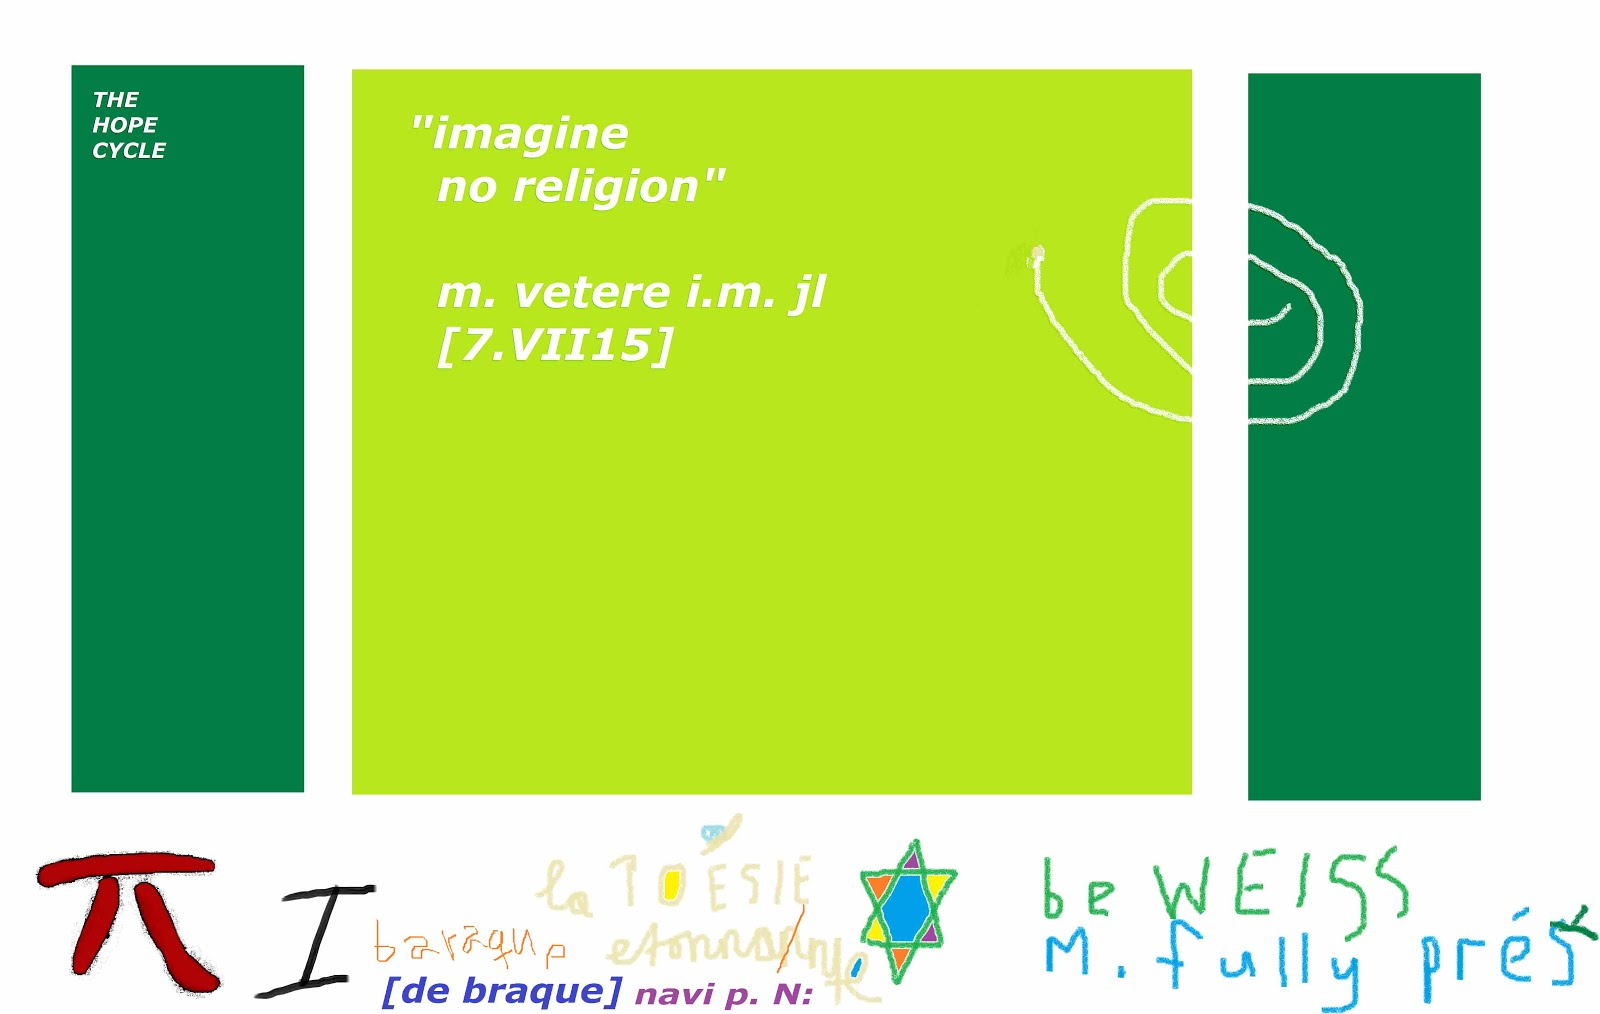 imagine no religion mischa vetere WHAT ARE WE WAITING FOR homage john lennON michael jackson obama